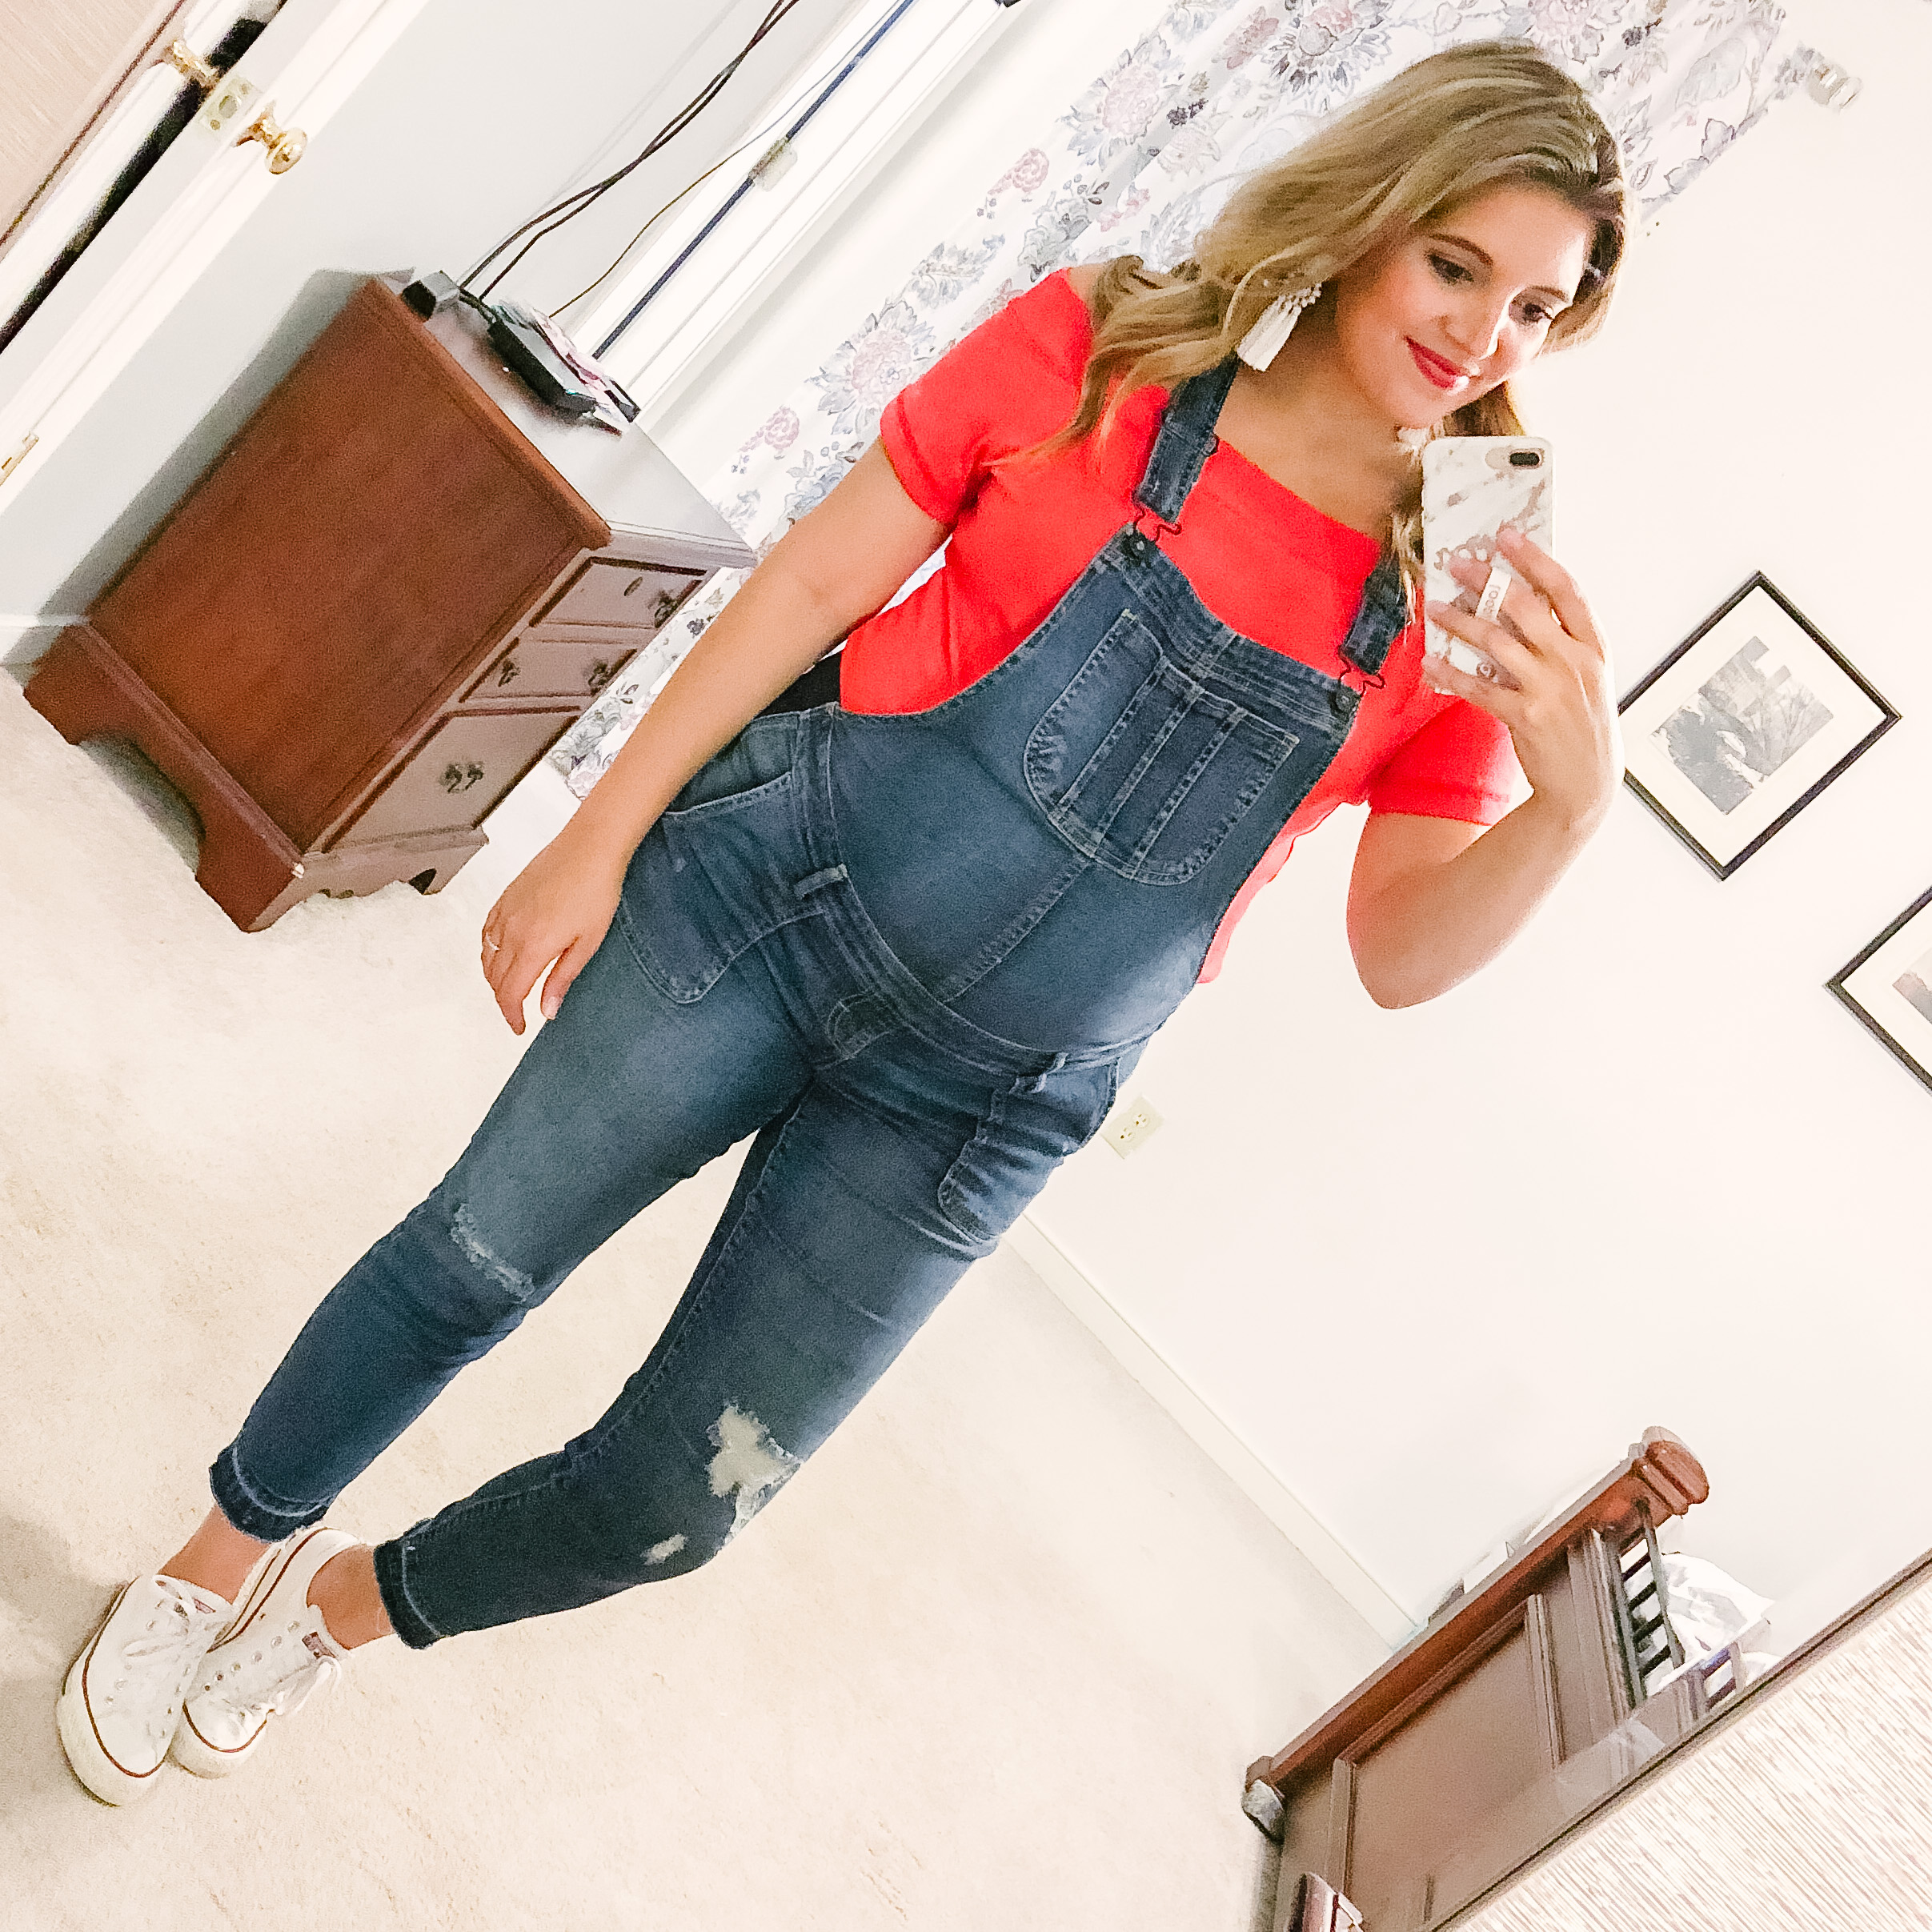 casual 4th of july outfit - red off shoulder tee and overalls! | patriotic outfit roundup - come see over 15 4th of july outfit ideas! bylaurenm.com